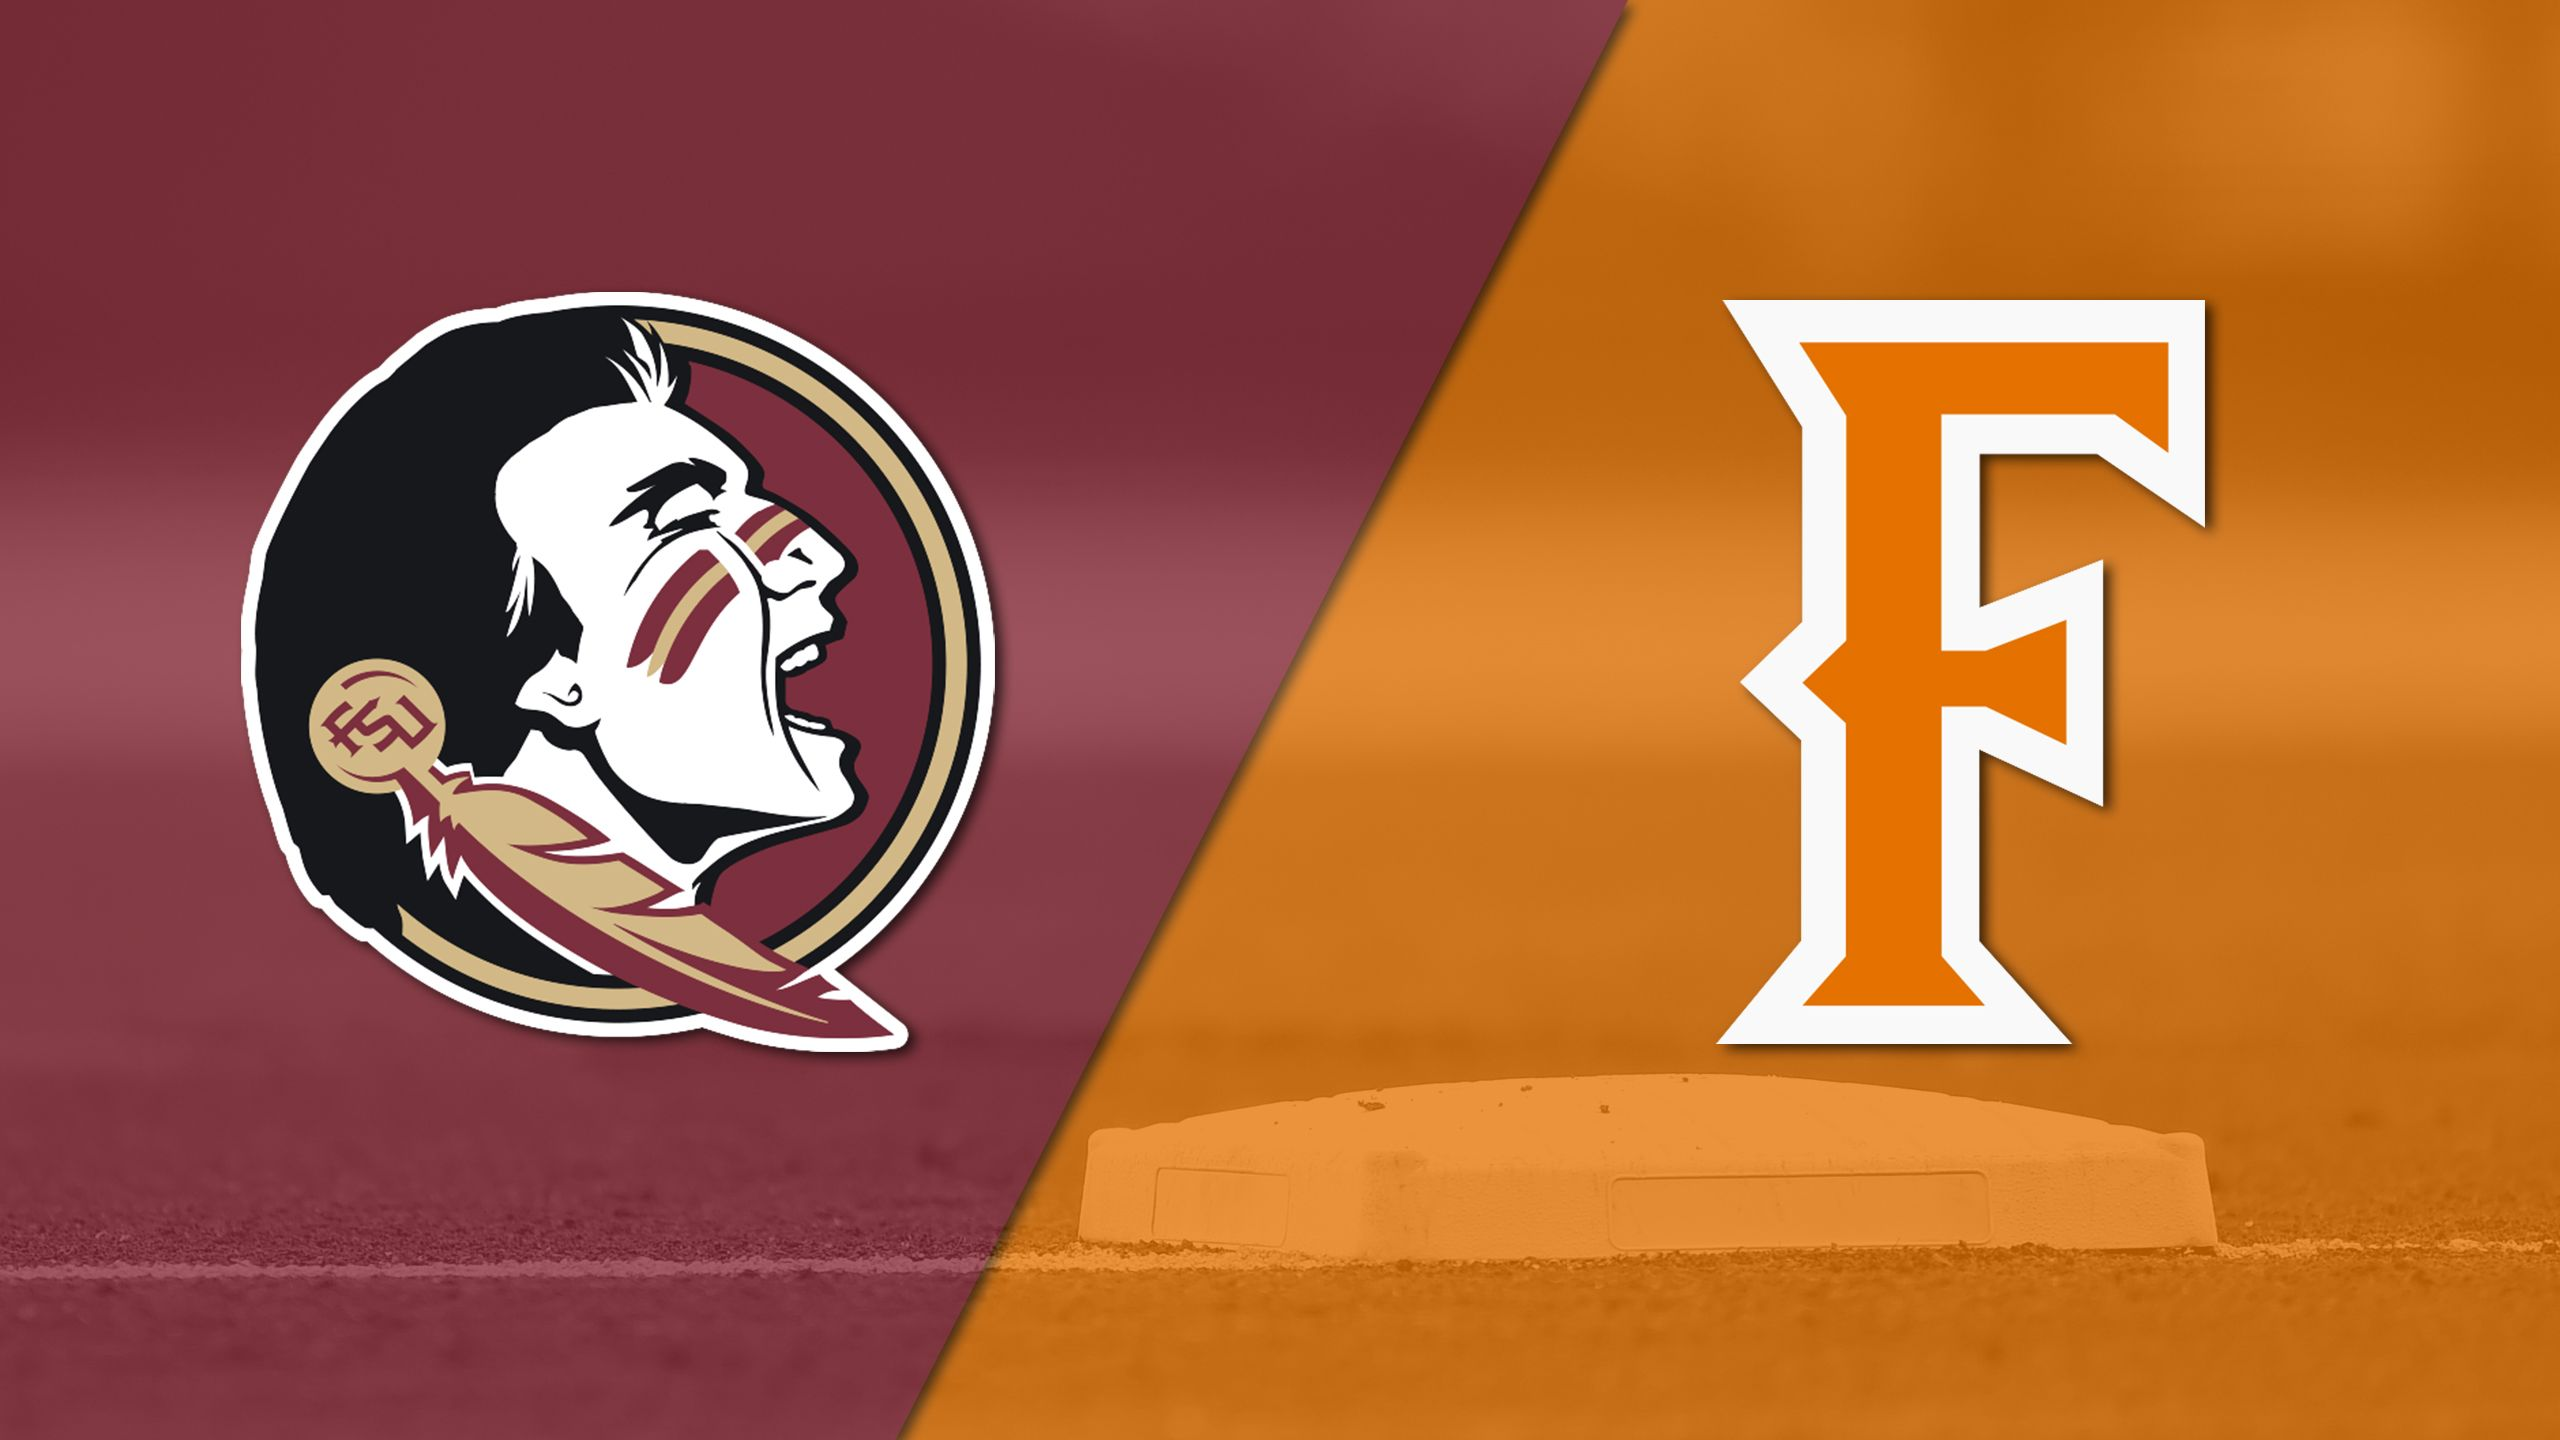 Florida State vs. Cal State Fullerton (Game 5) (College World Series)